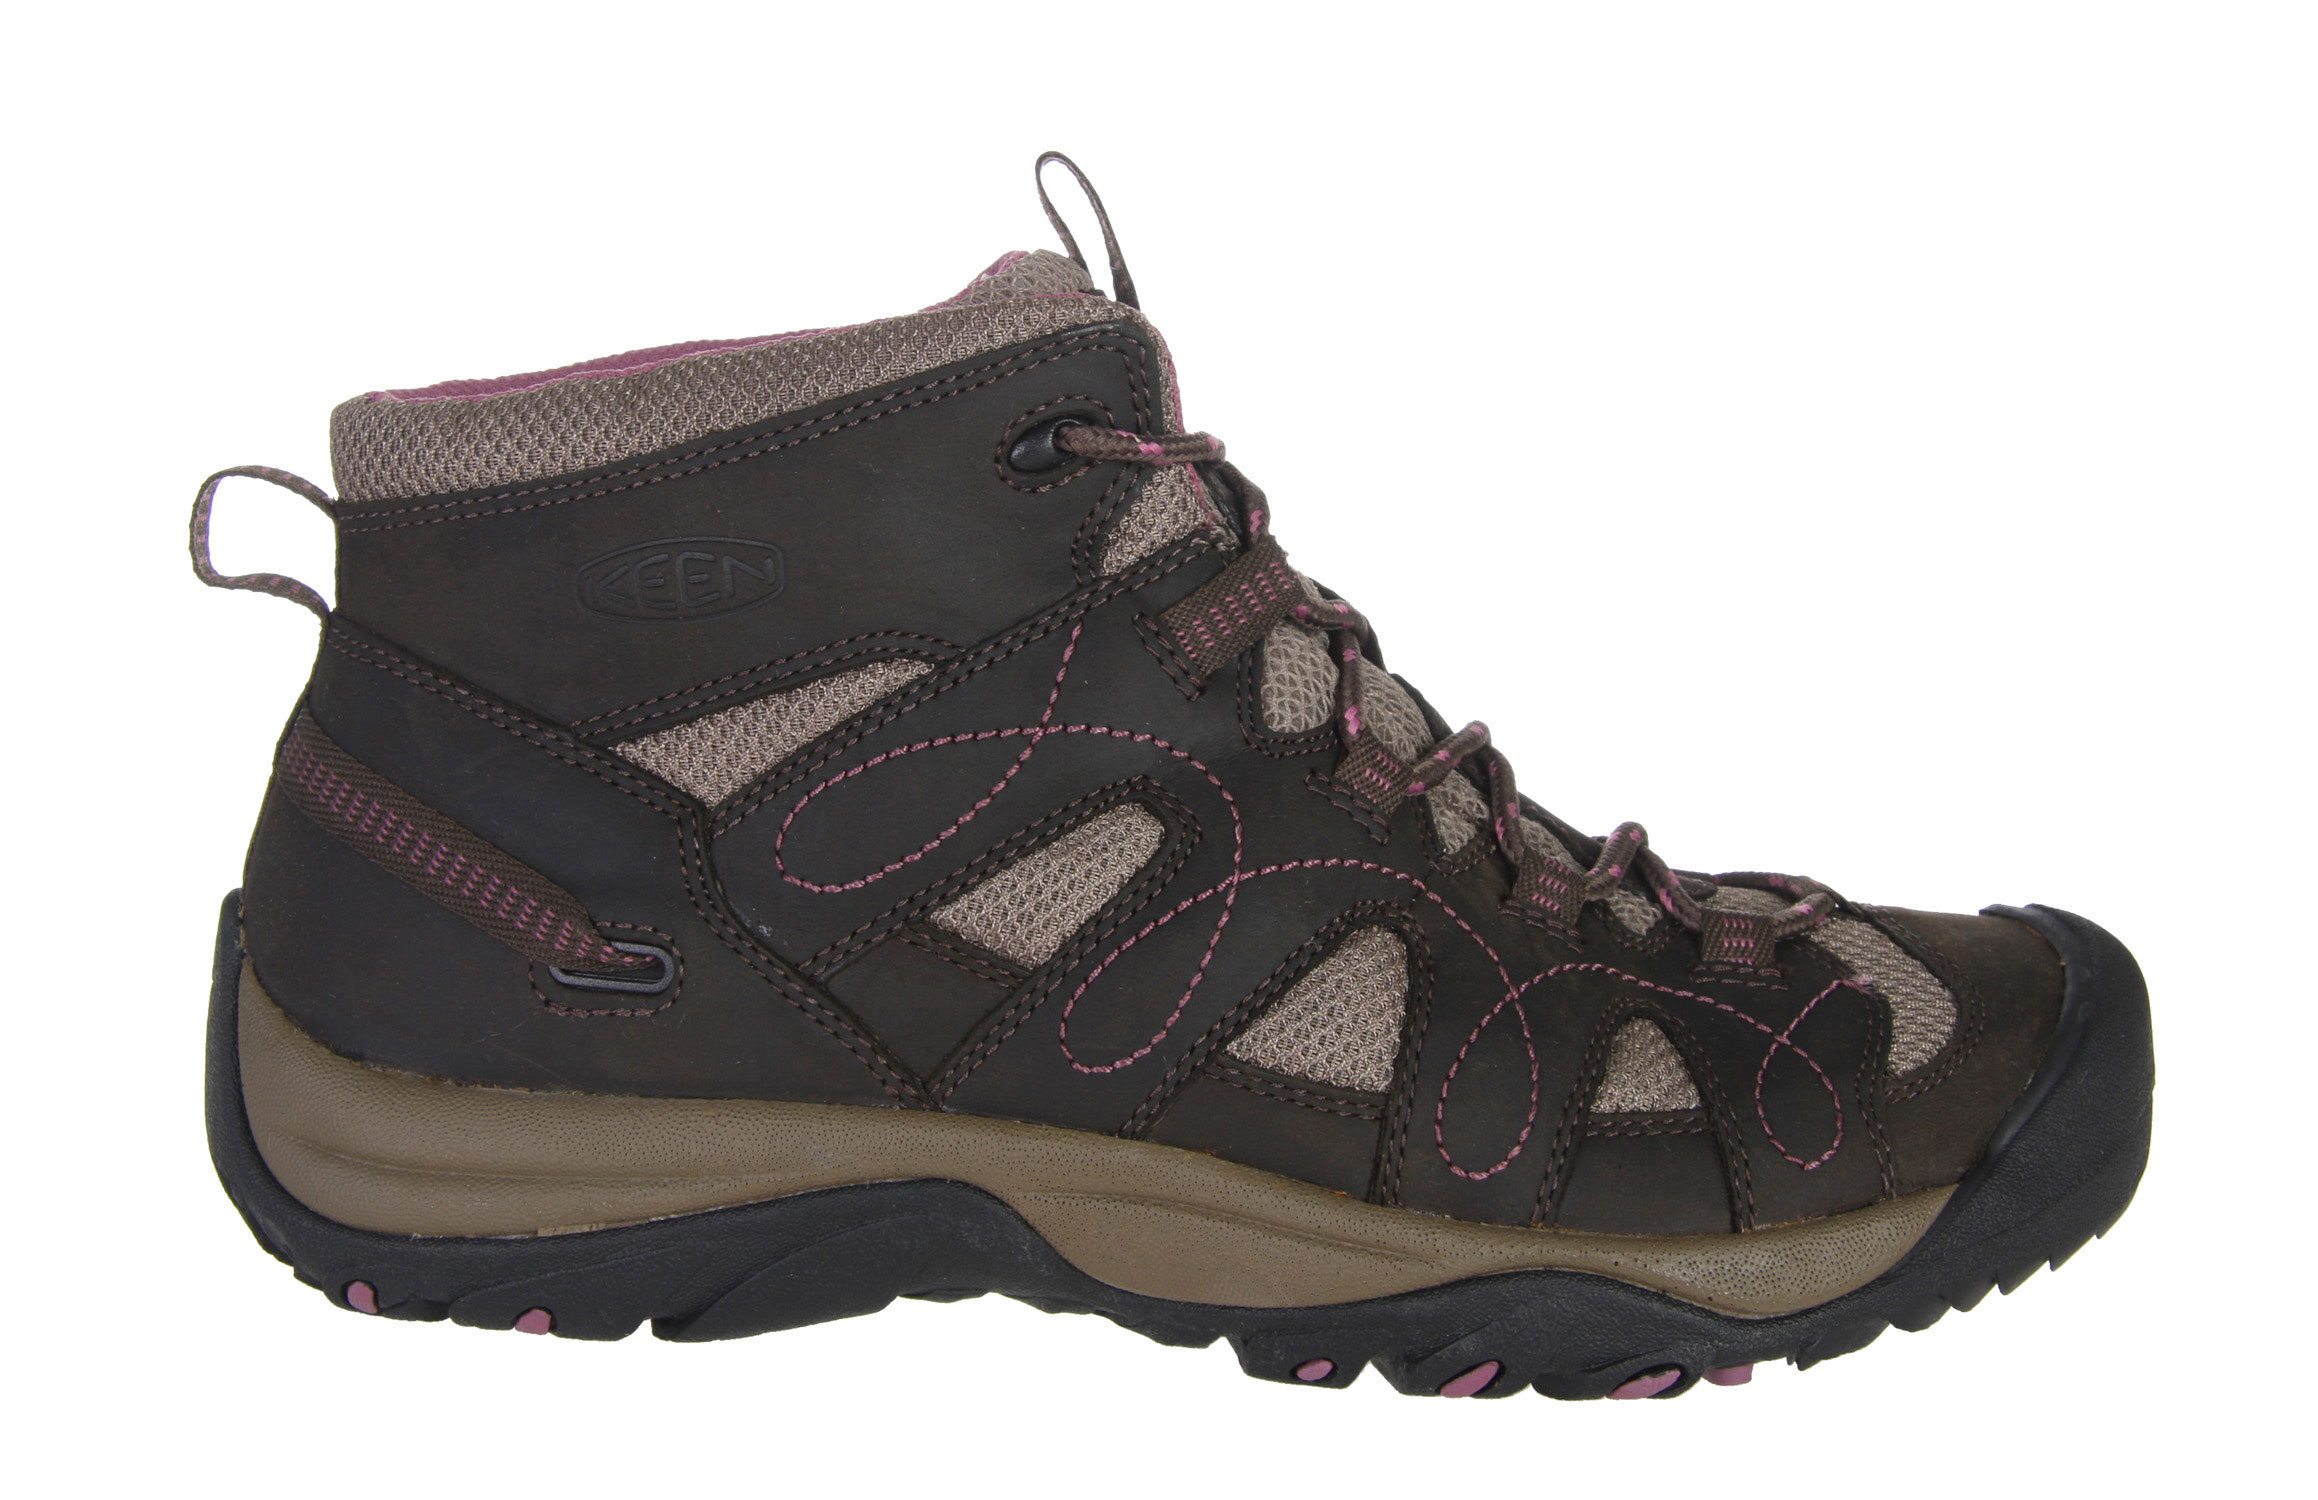 Camp and Hike For adventures in dry, warm climates, the breathable Shasta Mid makes an ideal and affordable all-around shoe for exploring canyons, scrambling up sand dunes or just kicking around town in classic KEEN comfort. The mid-ankle height provides support for carrying a pack or long days out on the trail.Key Features of The Keen Shasta Mid Women's Hiking Shoes: Leather with breathable mesh underlays Multi direction lug pattern for increased traction Non-marking rubber outsole Women's specific fit Metatomical Footbed Keen Protect - KEEN Patented Toe Protection where the shoe outsoles wrap up and over the toes for ultimate protection Weight: 13.7 oz / 388 GRAMS Fit Tip: We find this style runs about a 1/2 size small Upper: Leather Rubber: Non-marking rubber outsole Activities: Hiking Type: Boots, Shoes, Lace Up - $79.95